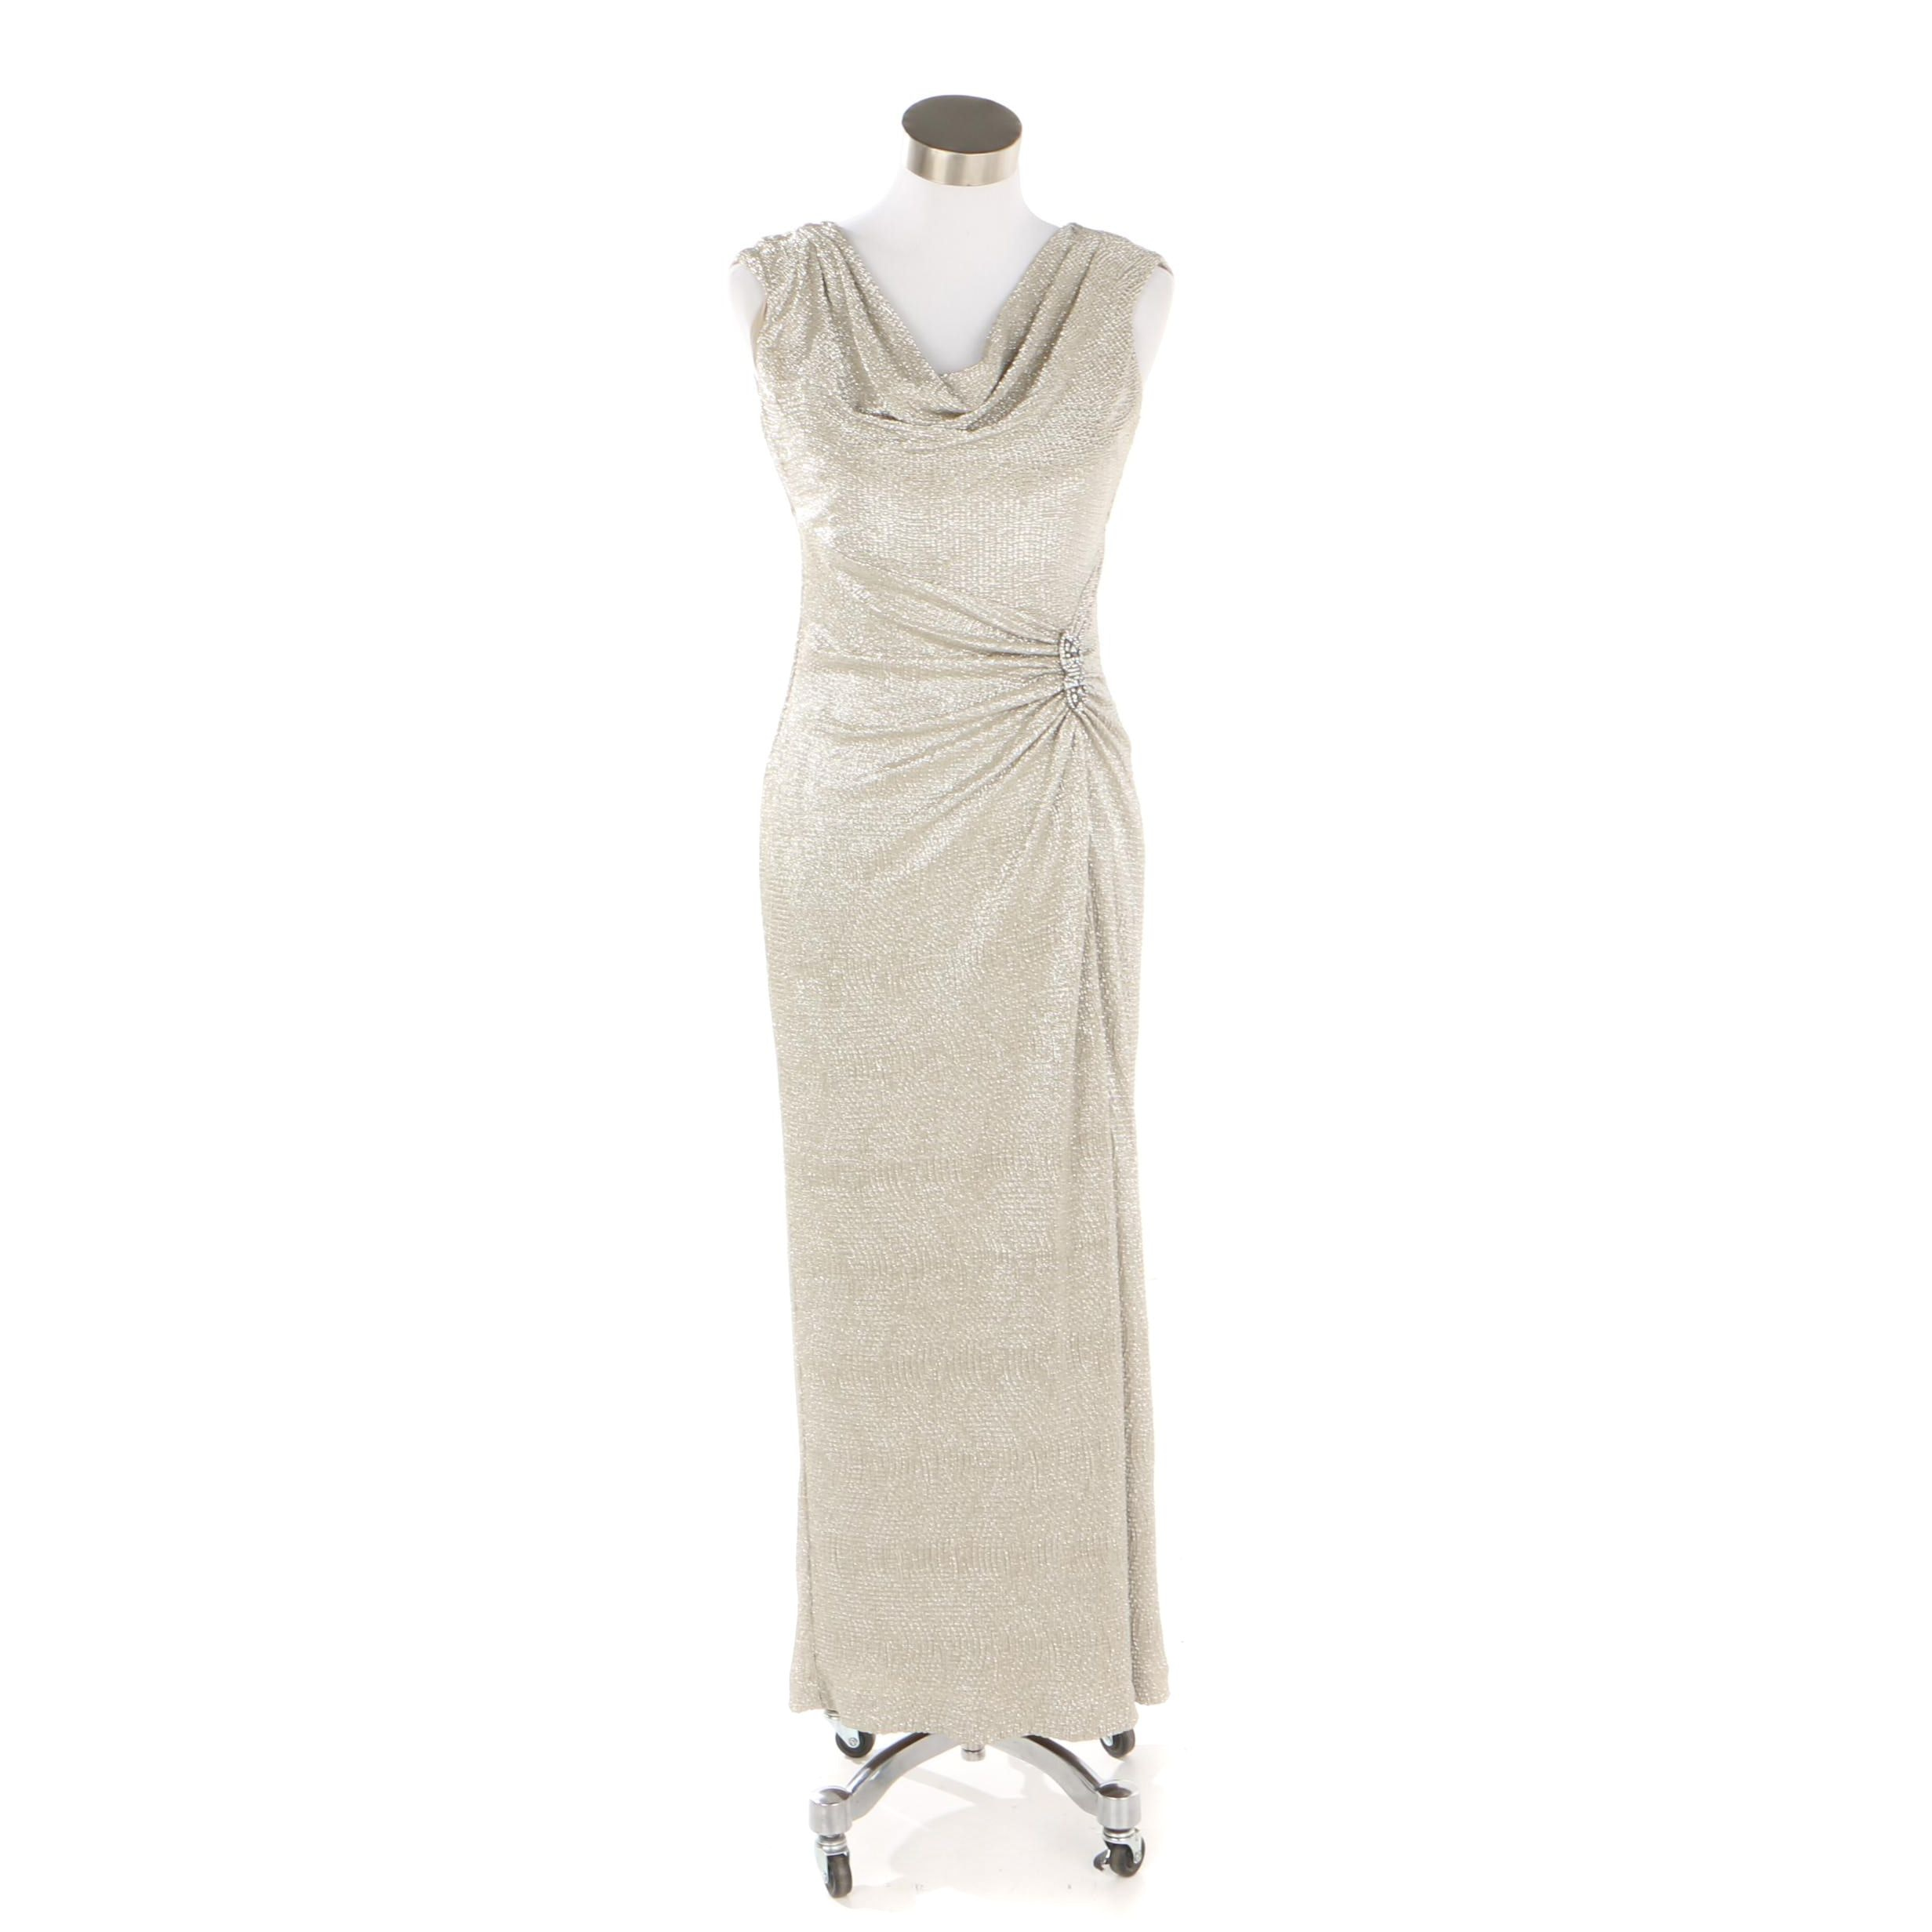 Lauren Ralph Lauren Metallic Sleeveless Evening Dress